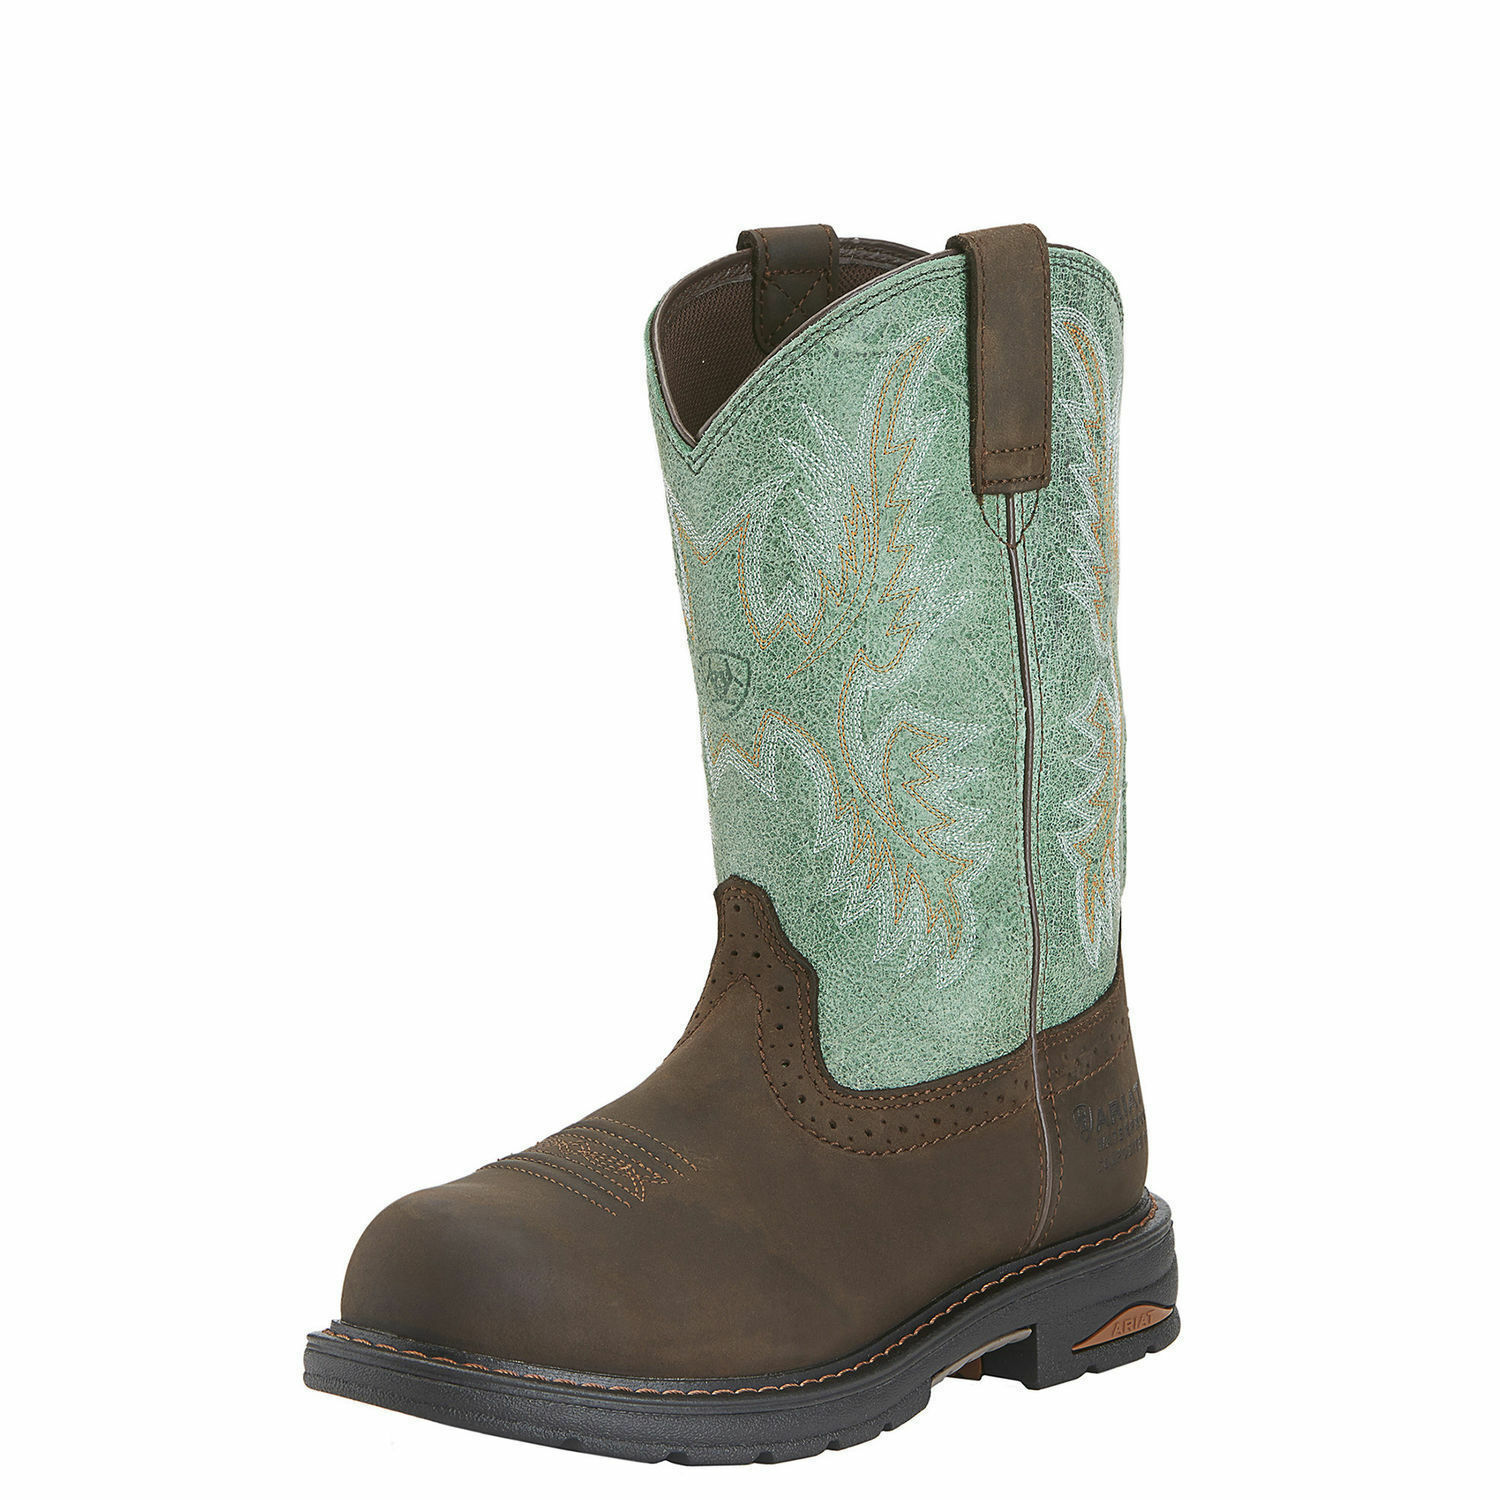 Ariat 10015405 Donna Waterproof Tracey Pull-On WP Work Boot - Composite Toe